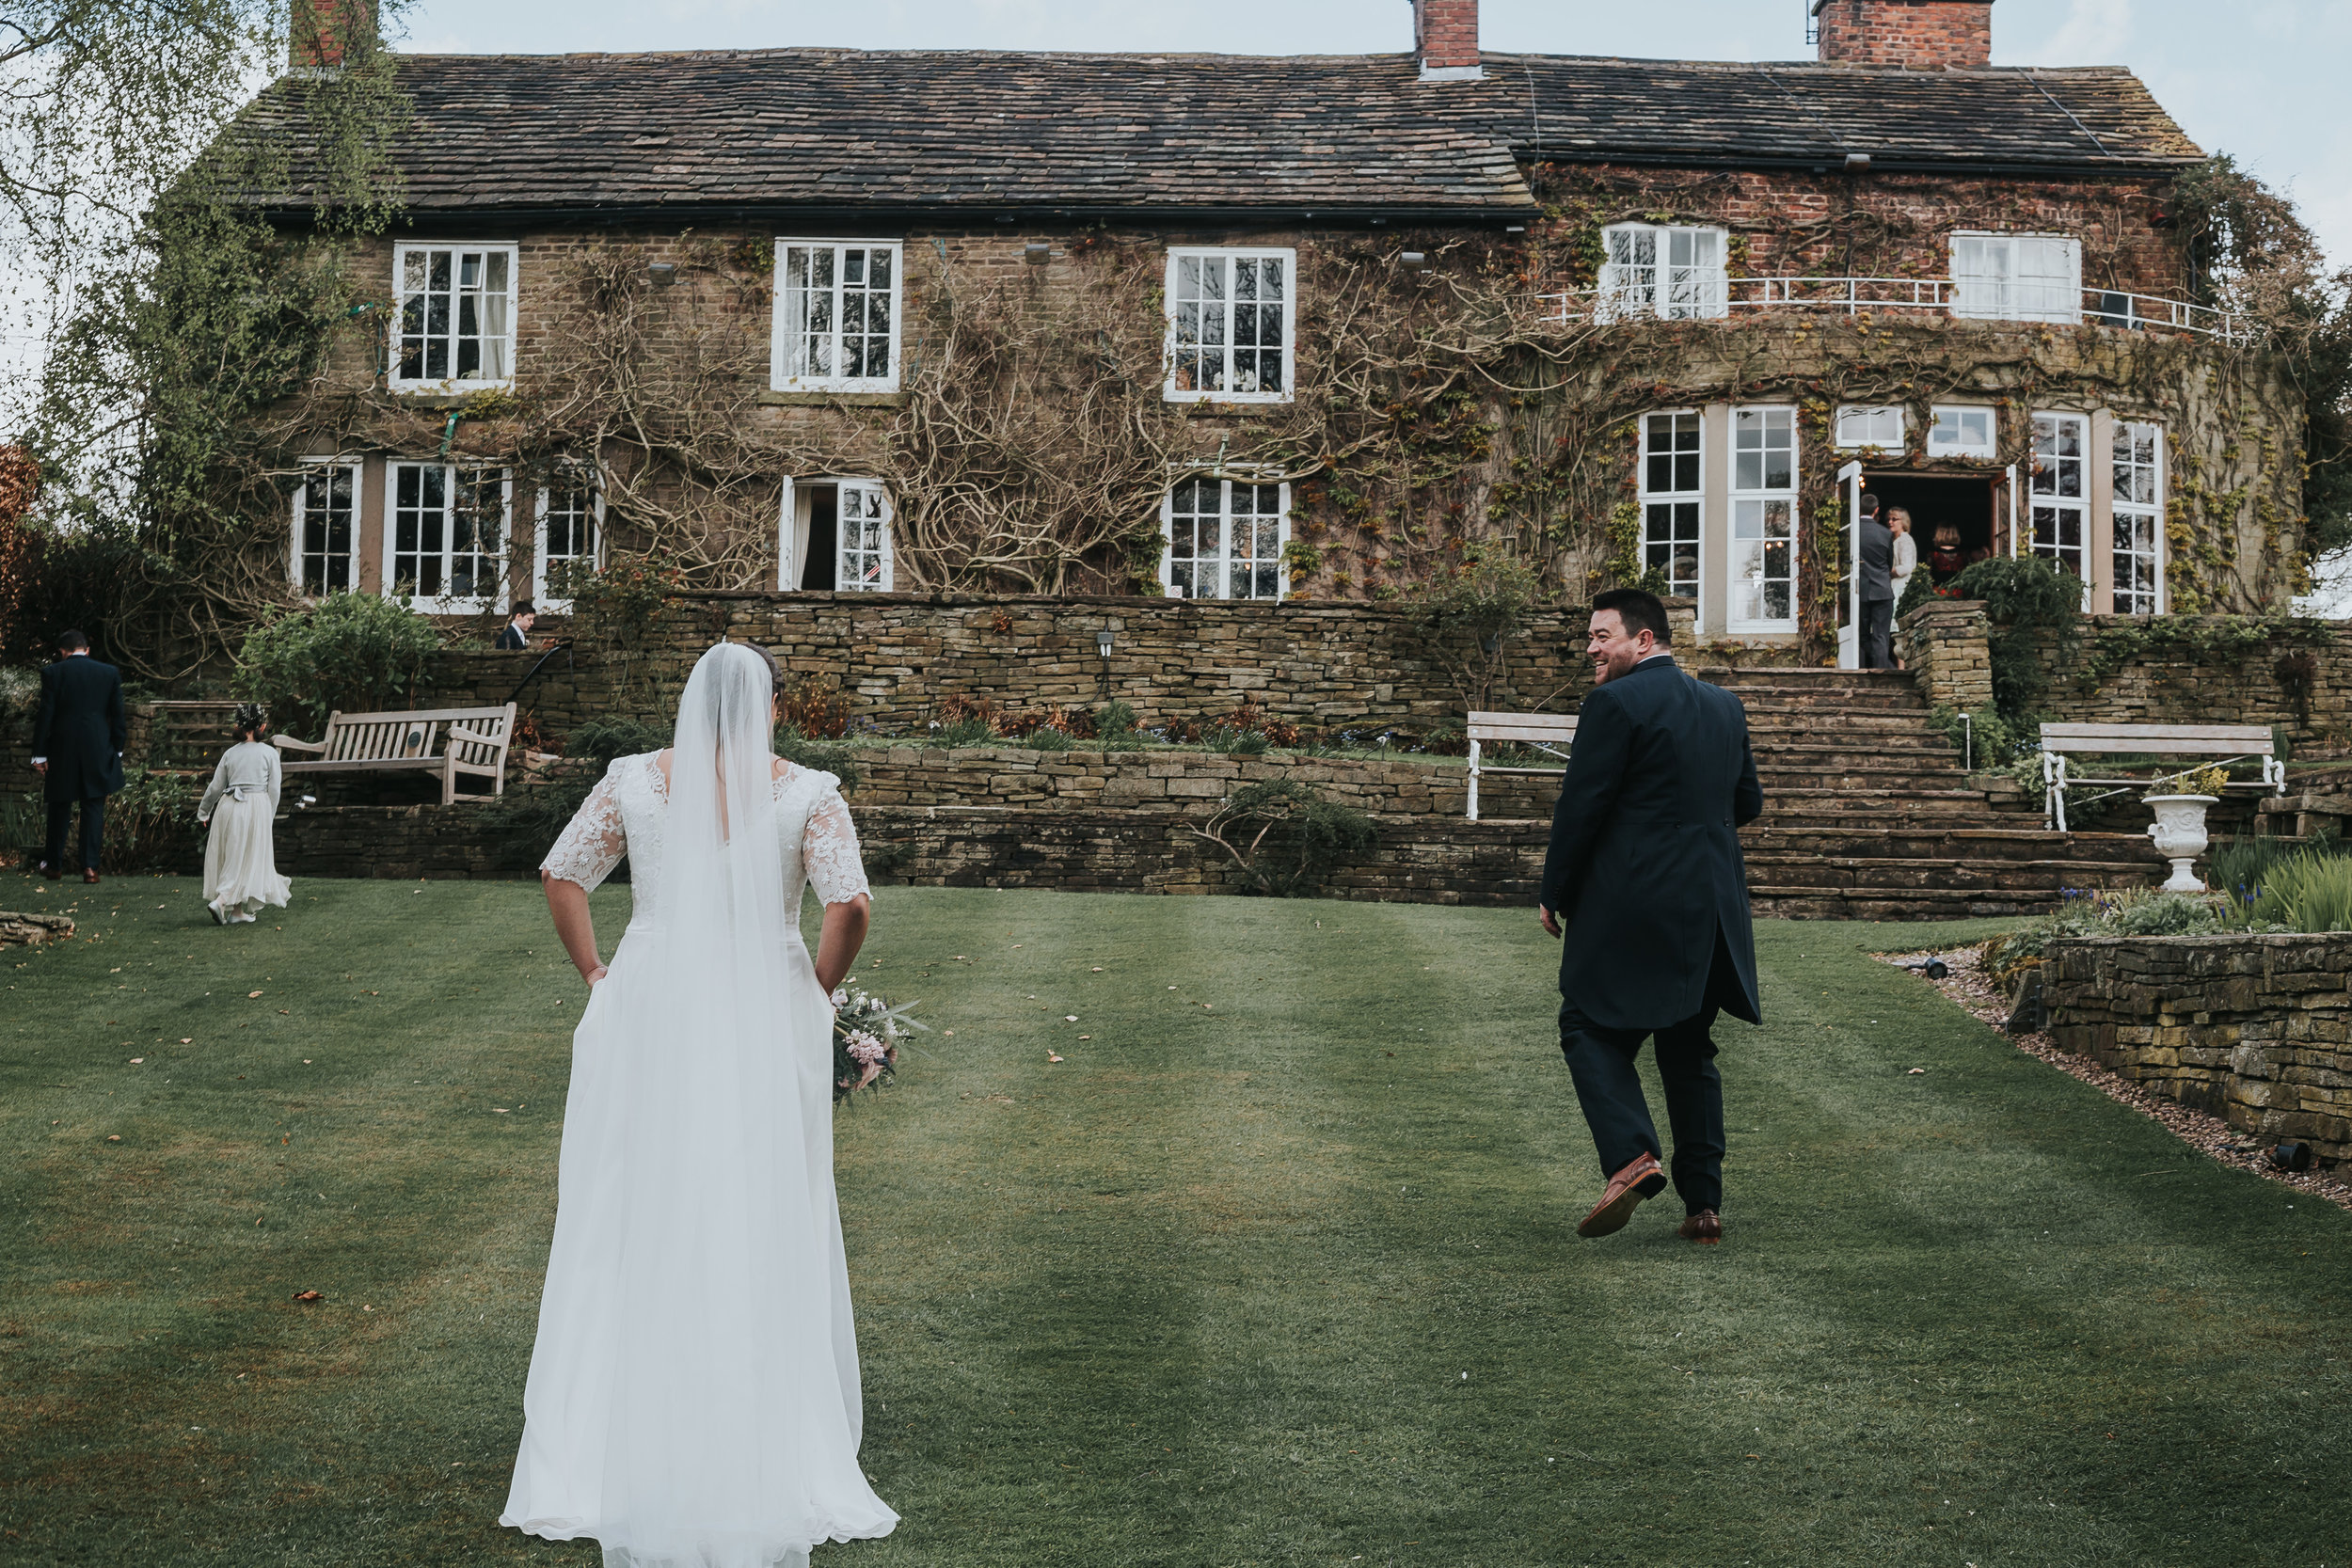 Hilltop Country House Wedding Photography - 84.jpg